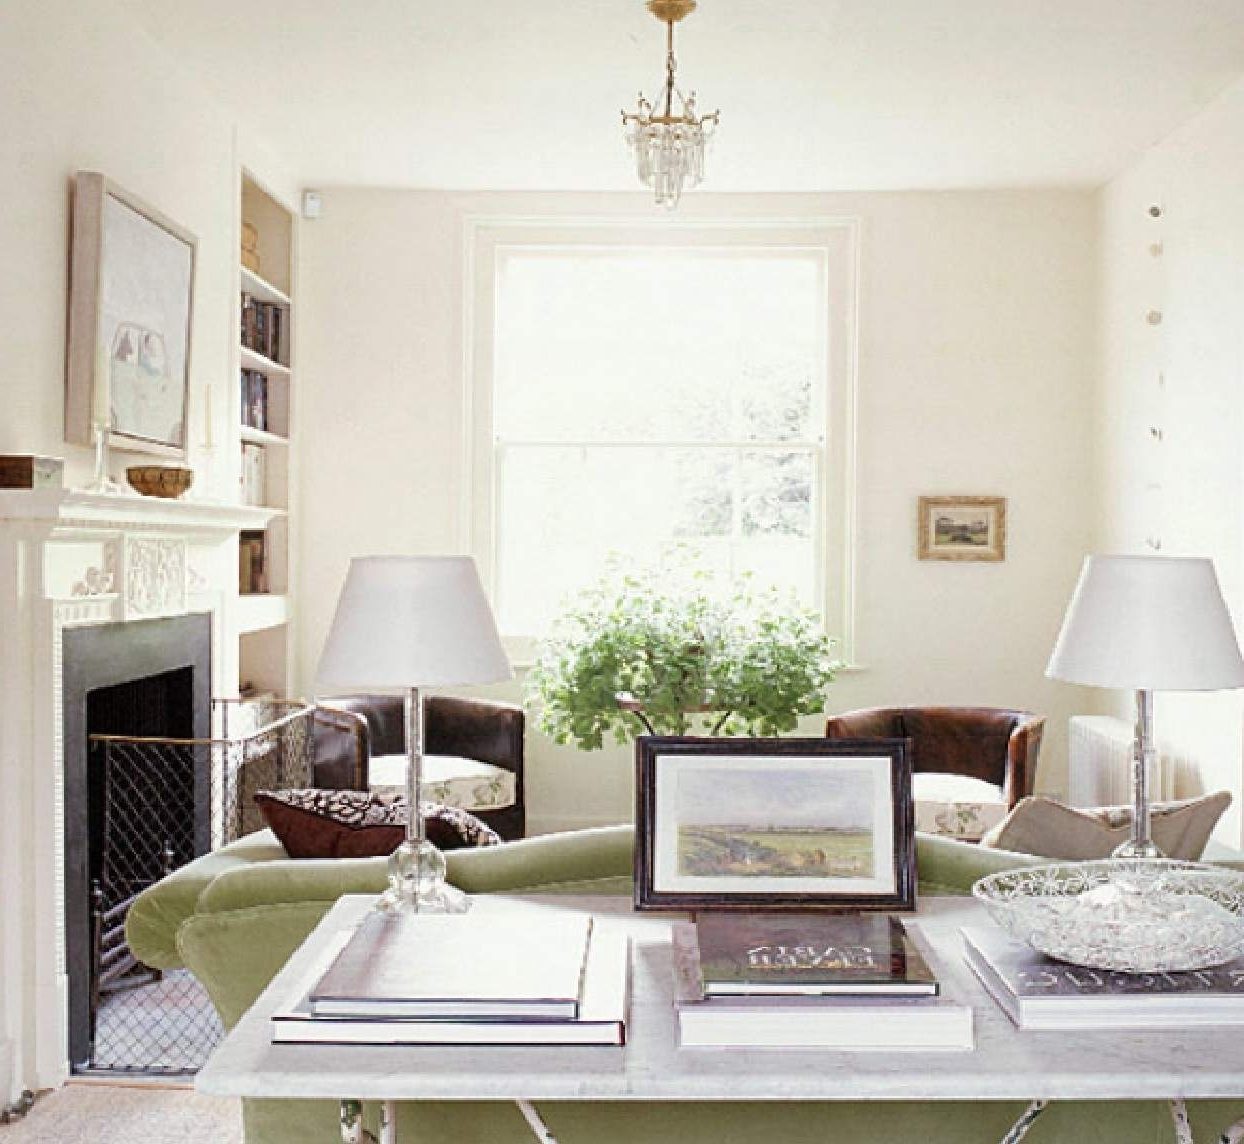 Living Room Table Lamps For Current The Necessity Of Table Lamps For Living Room – Blogbeen (View 6 of 15)